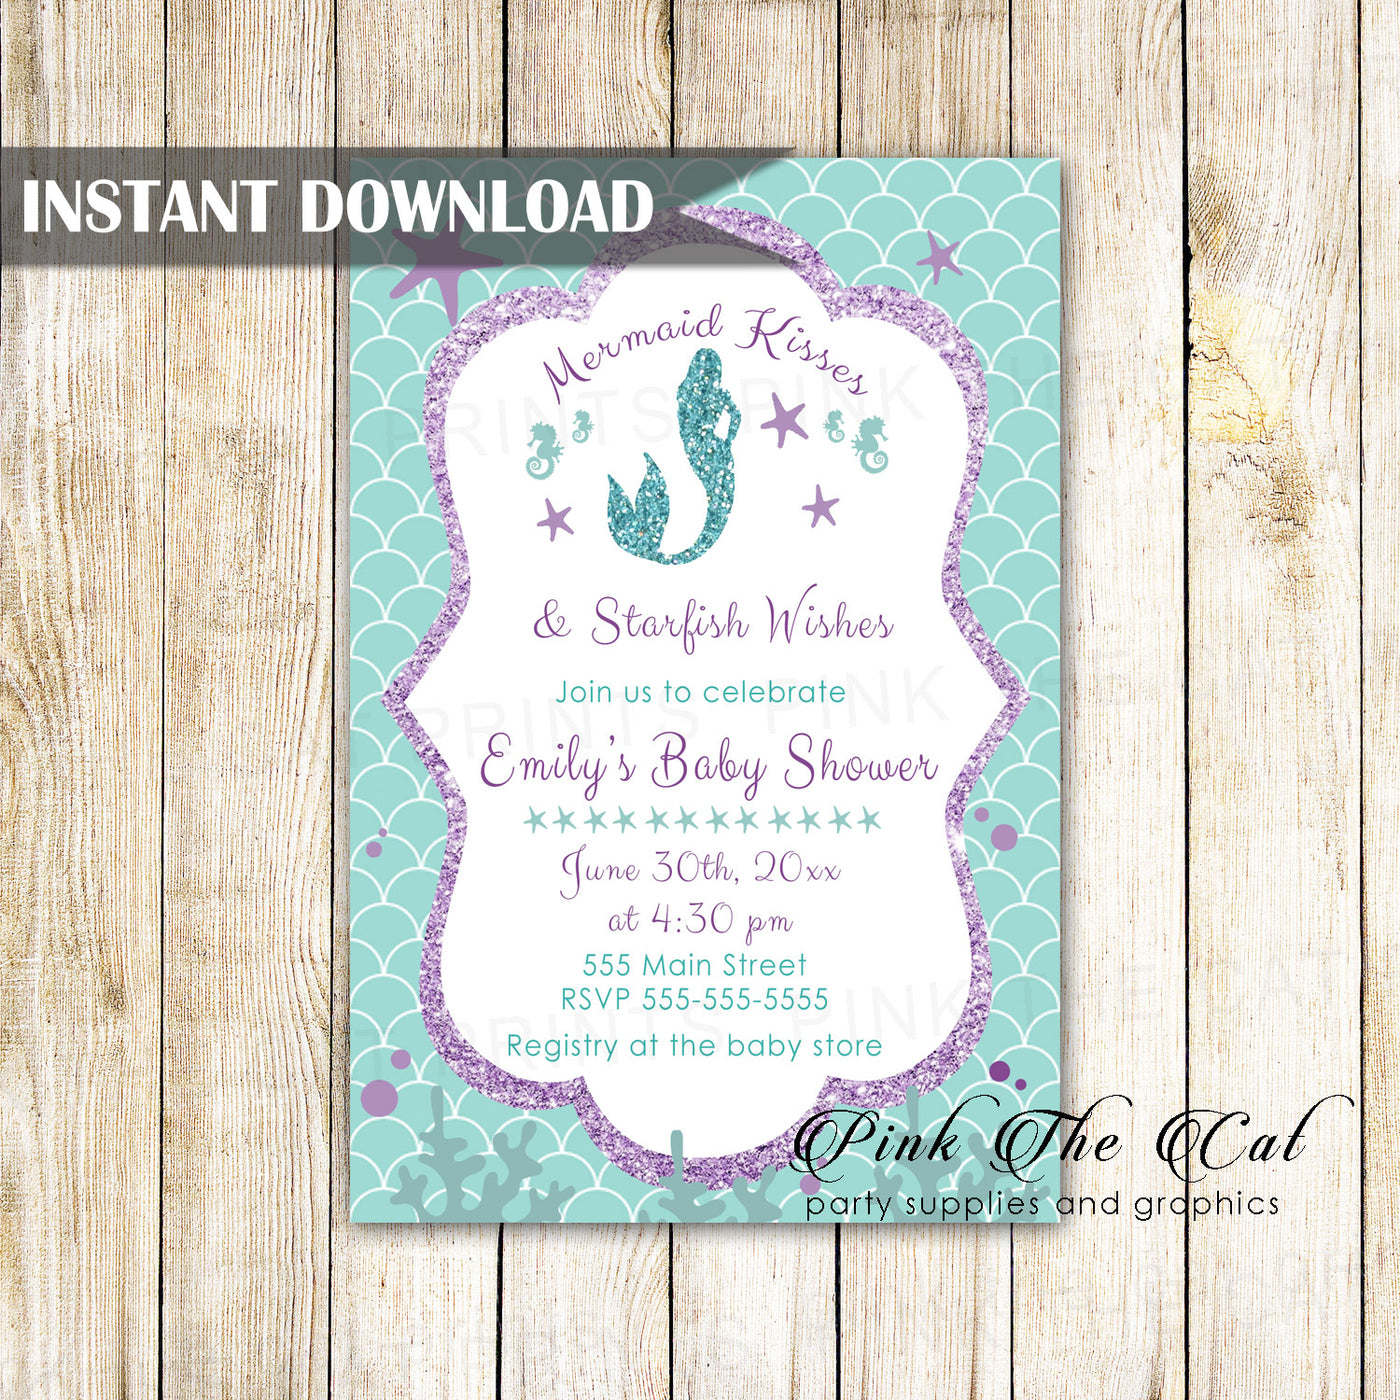 photo relating to Printable Mermaid Baby Shower Invitations known as Mermaid lady little one shower invitation crimson teal glitter printable